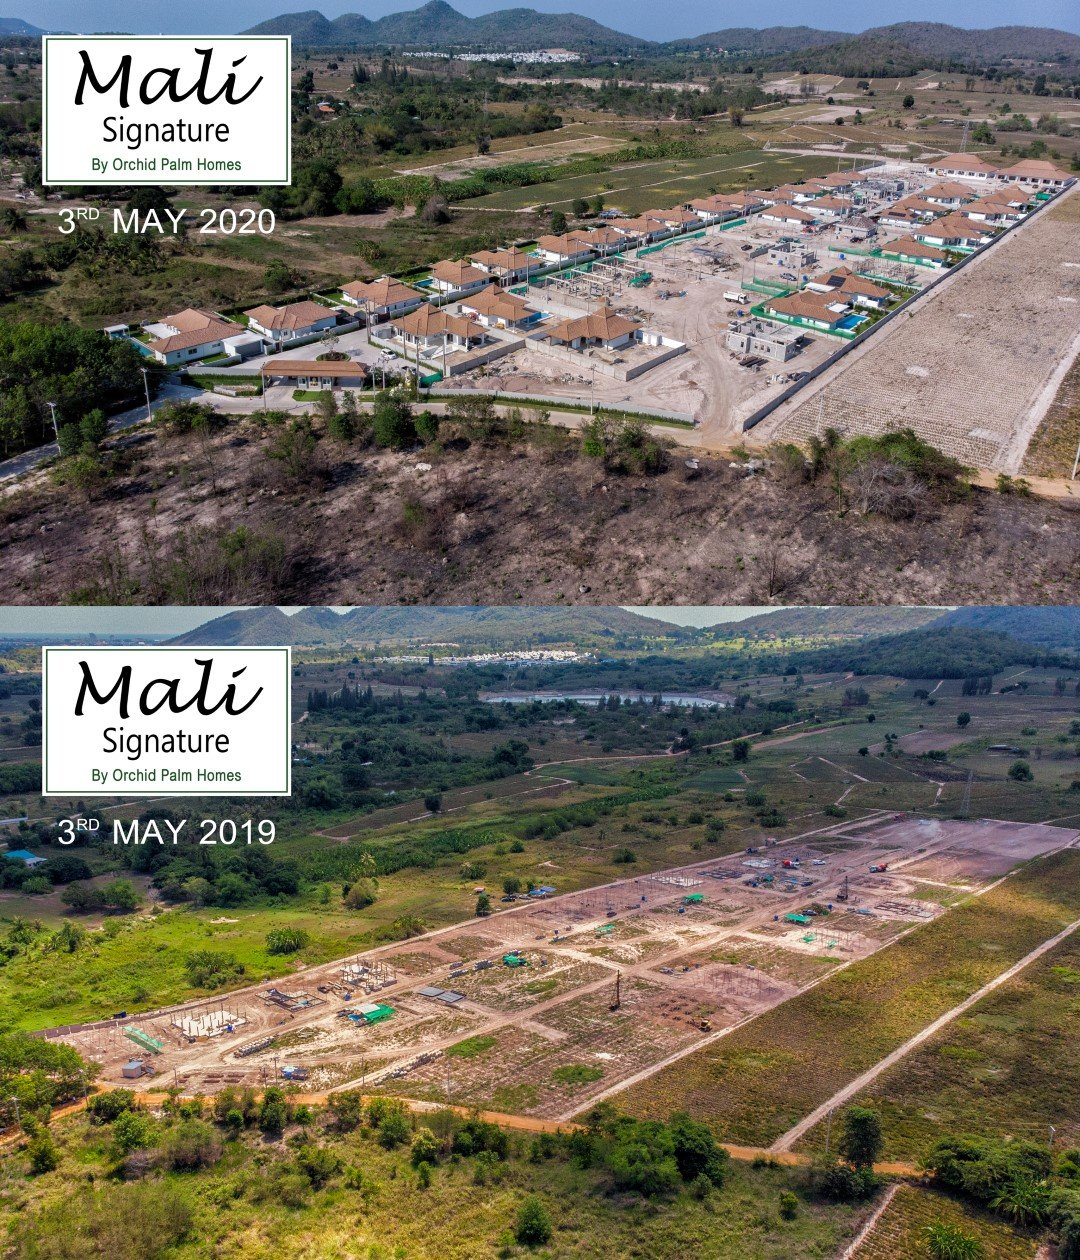 Mali Signature | 1 Year Construction Progress